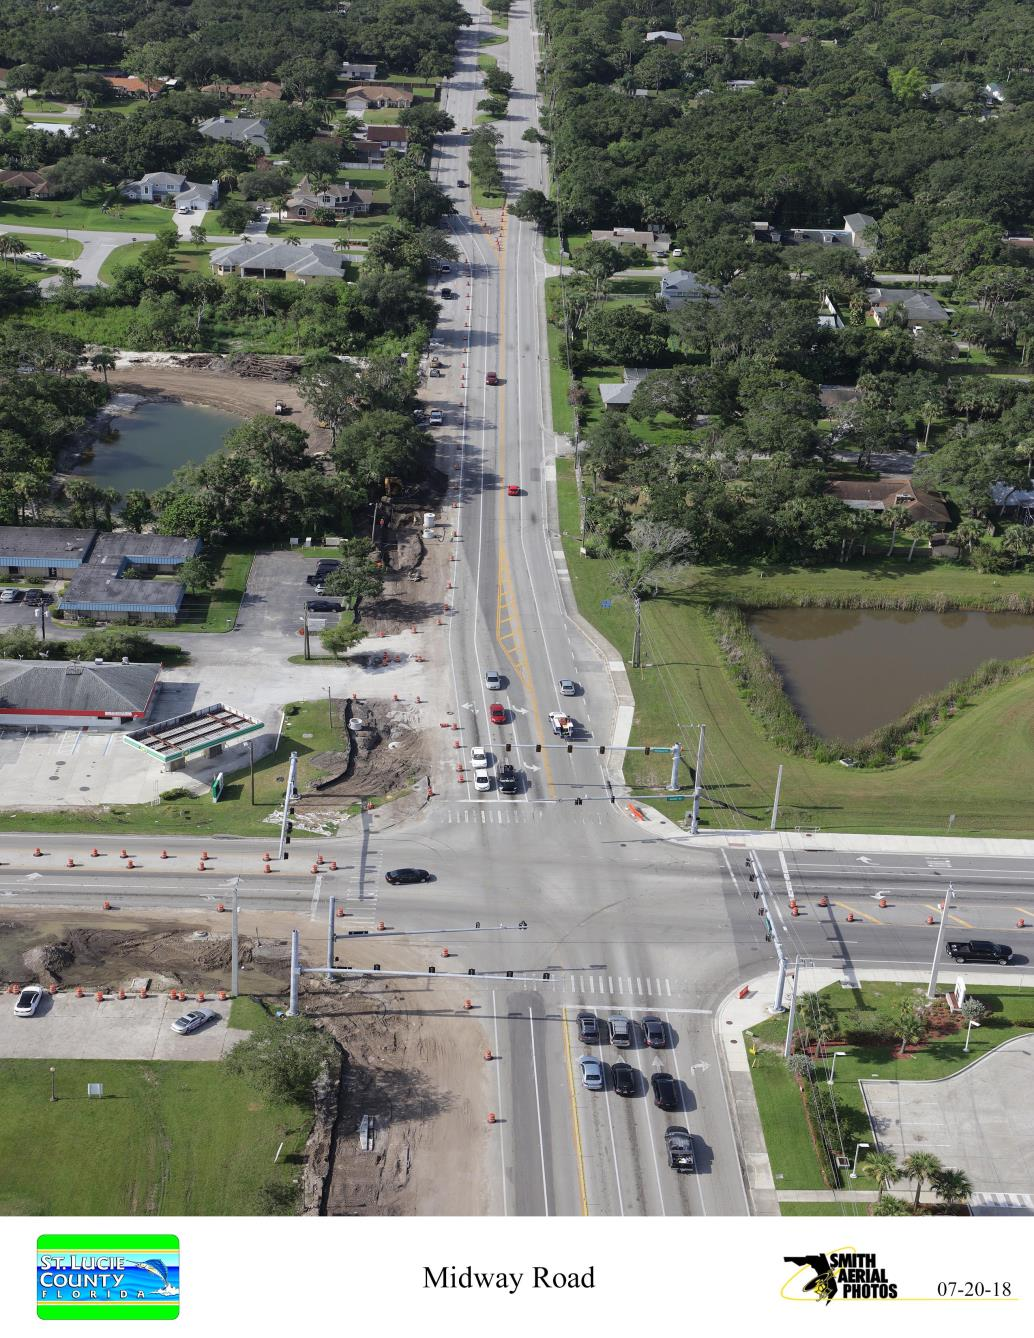 Intersection of S 25th St and Midway Rd from North